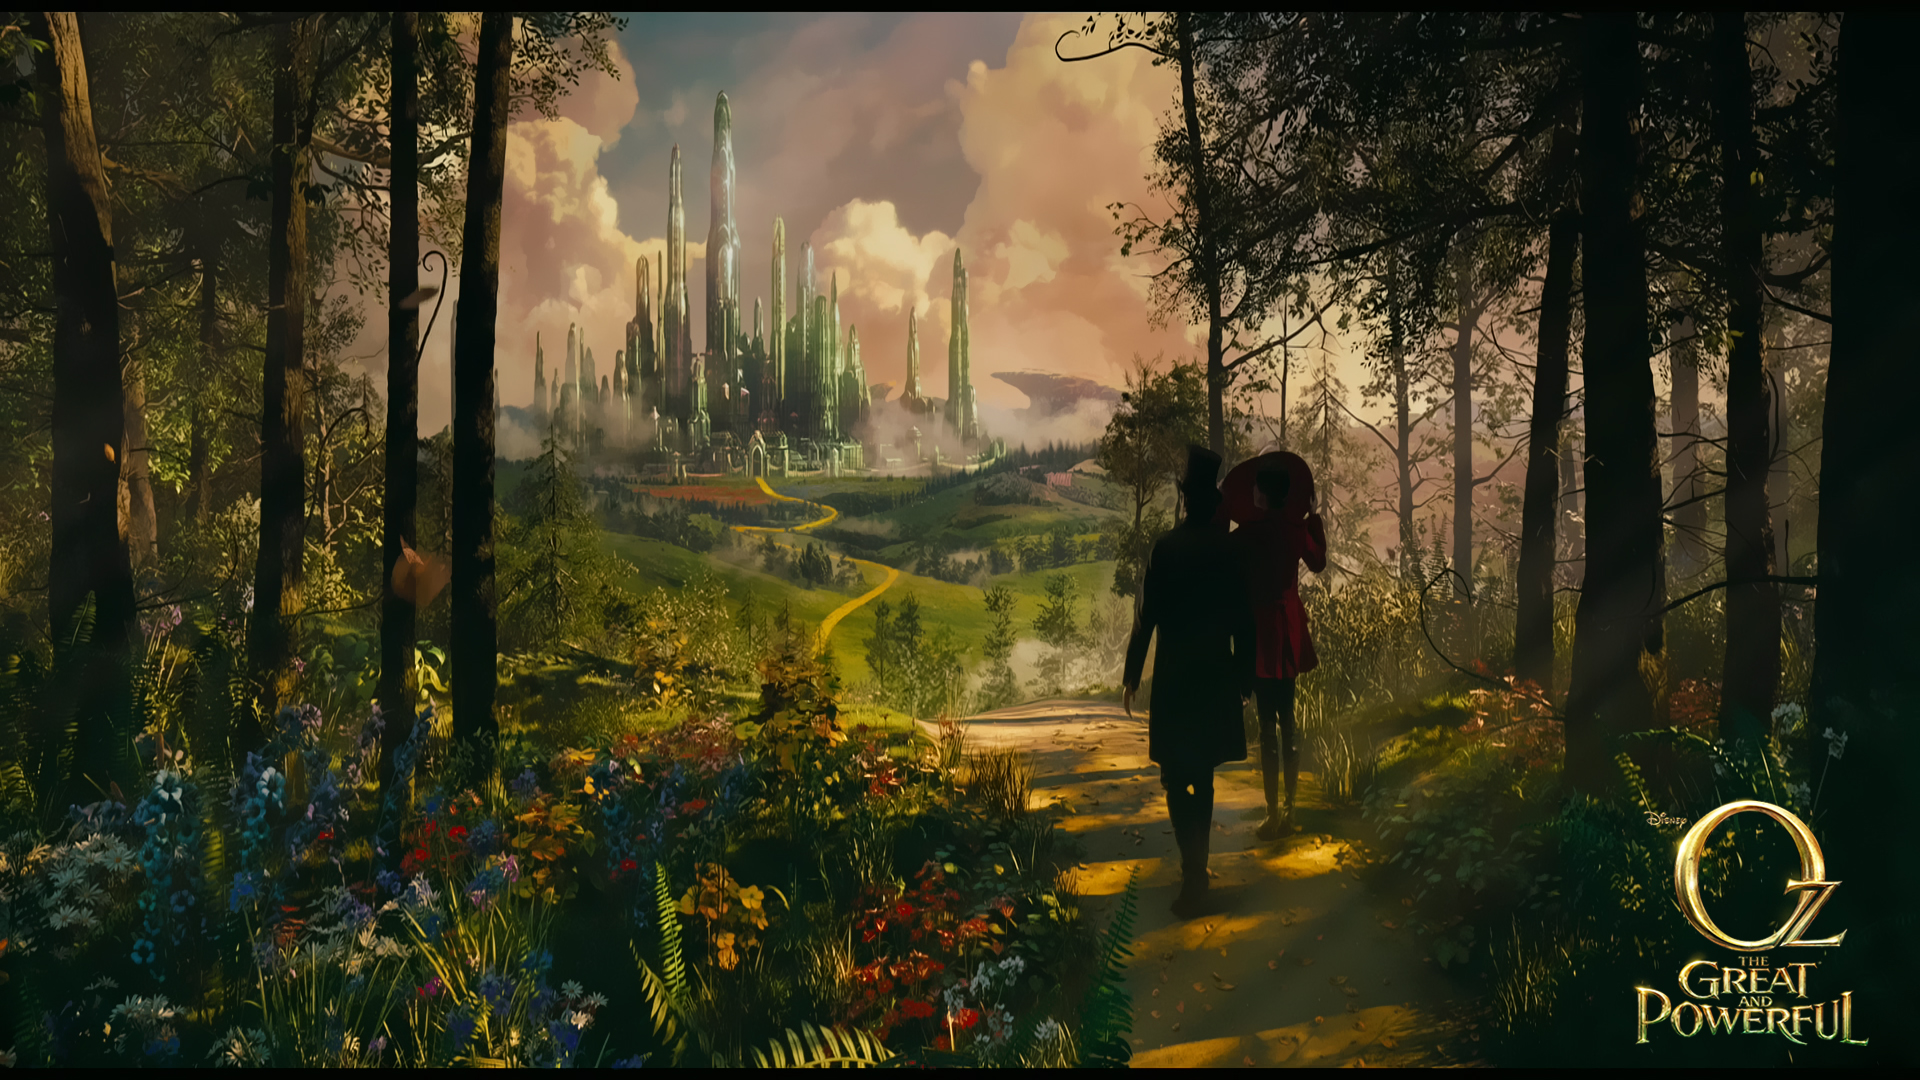 Oz the Great and Powerful wallpaper 6